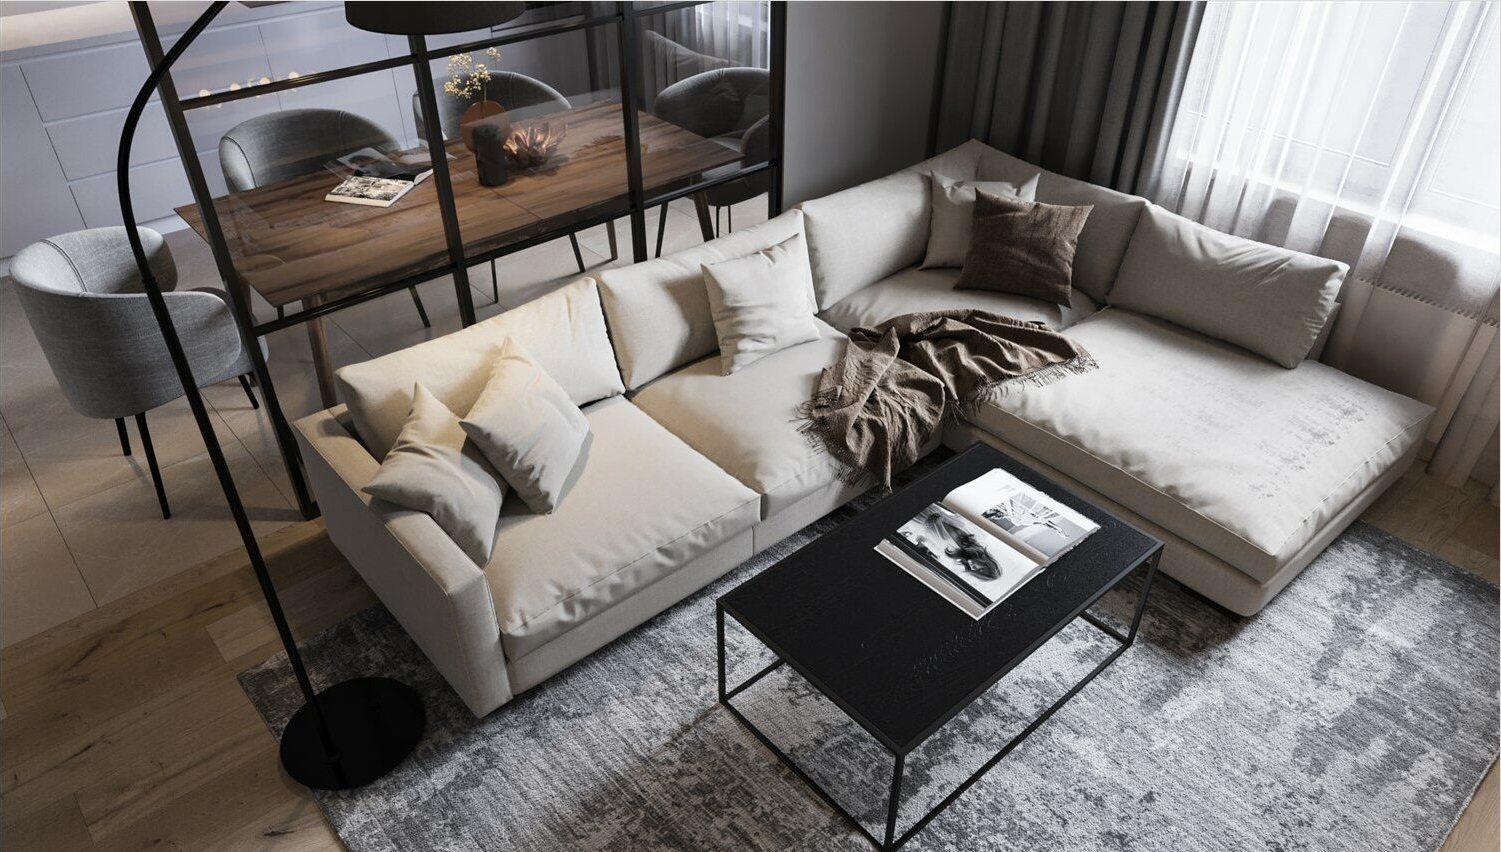 Sofa for a modern living room: selection guide and 50+ ideas